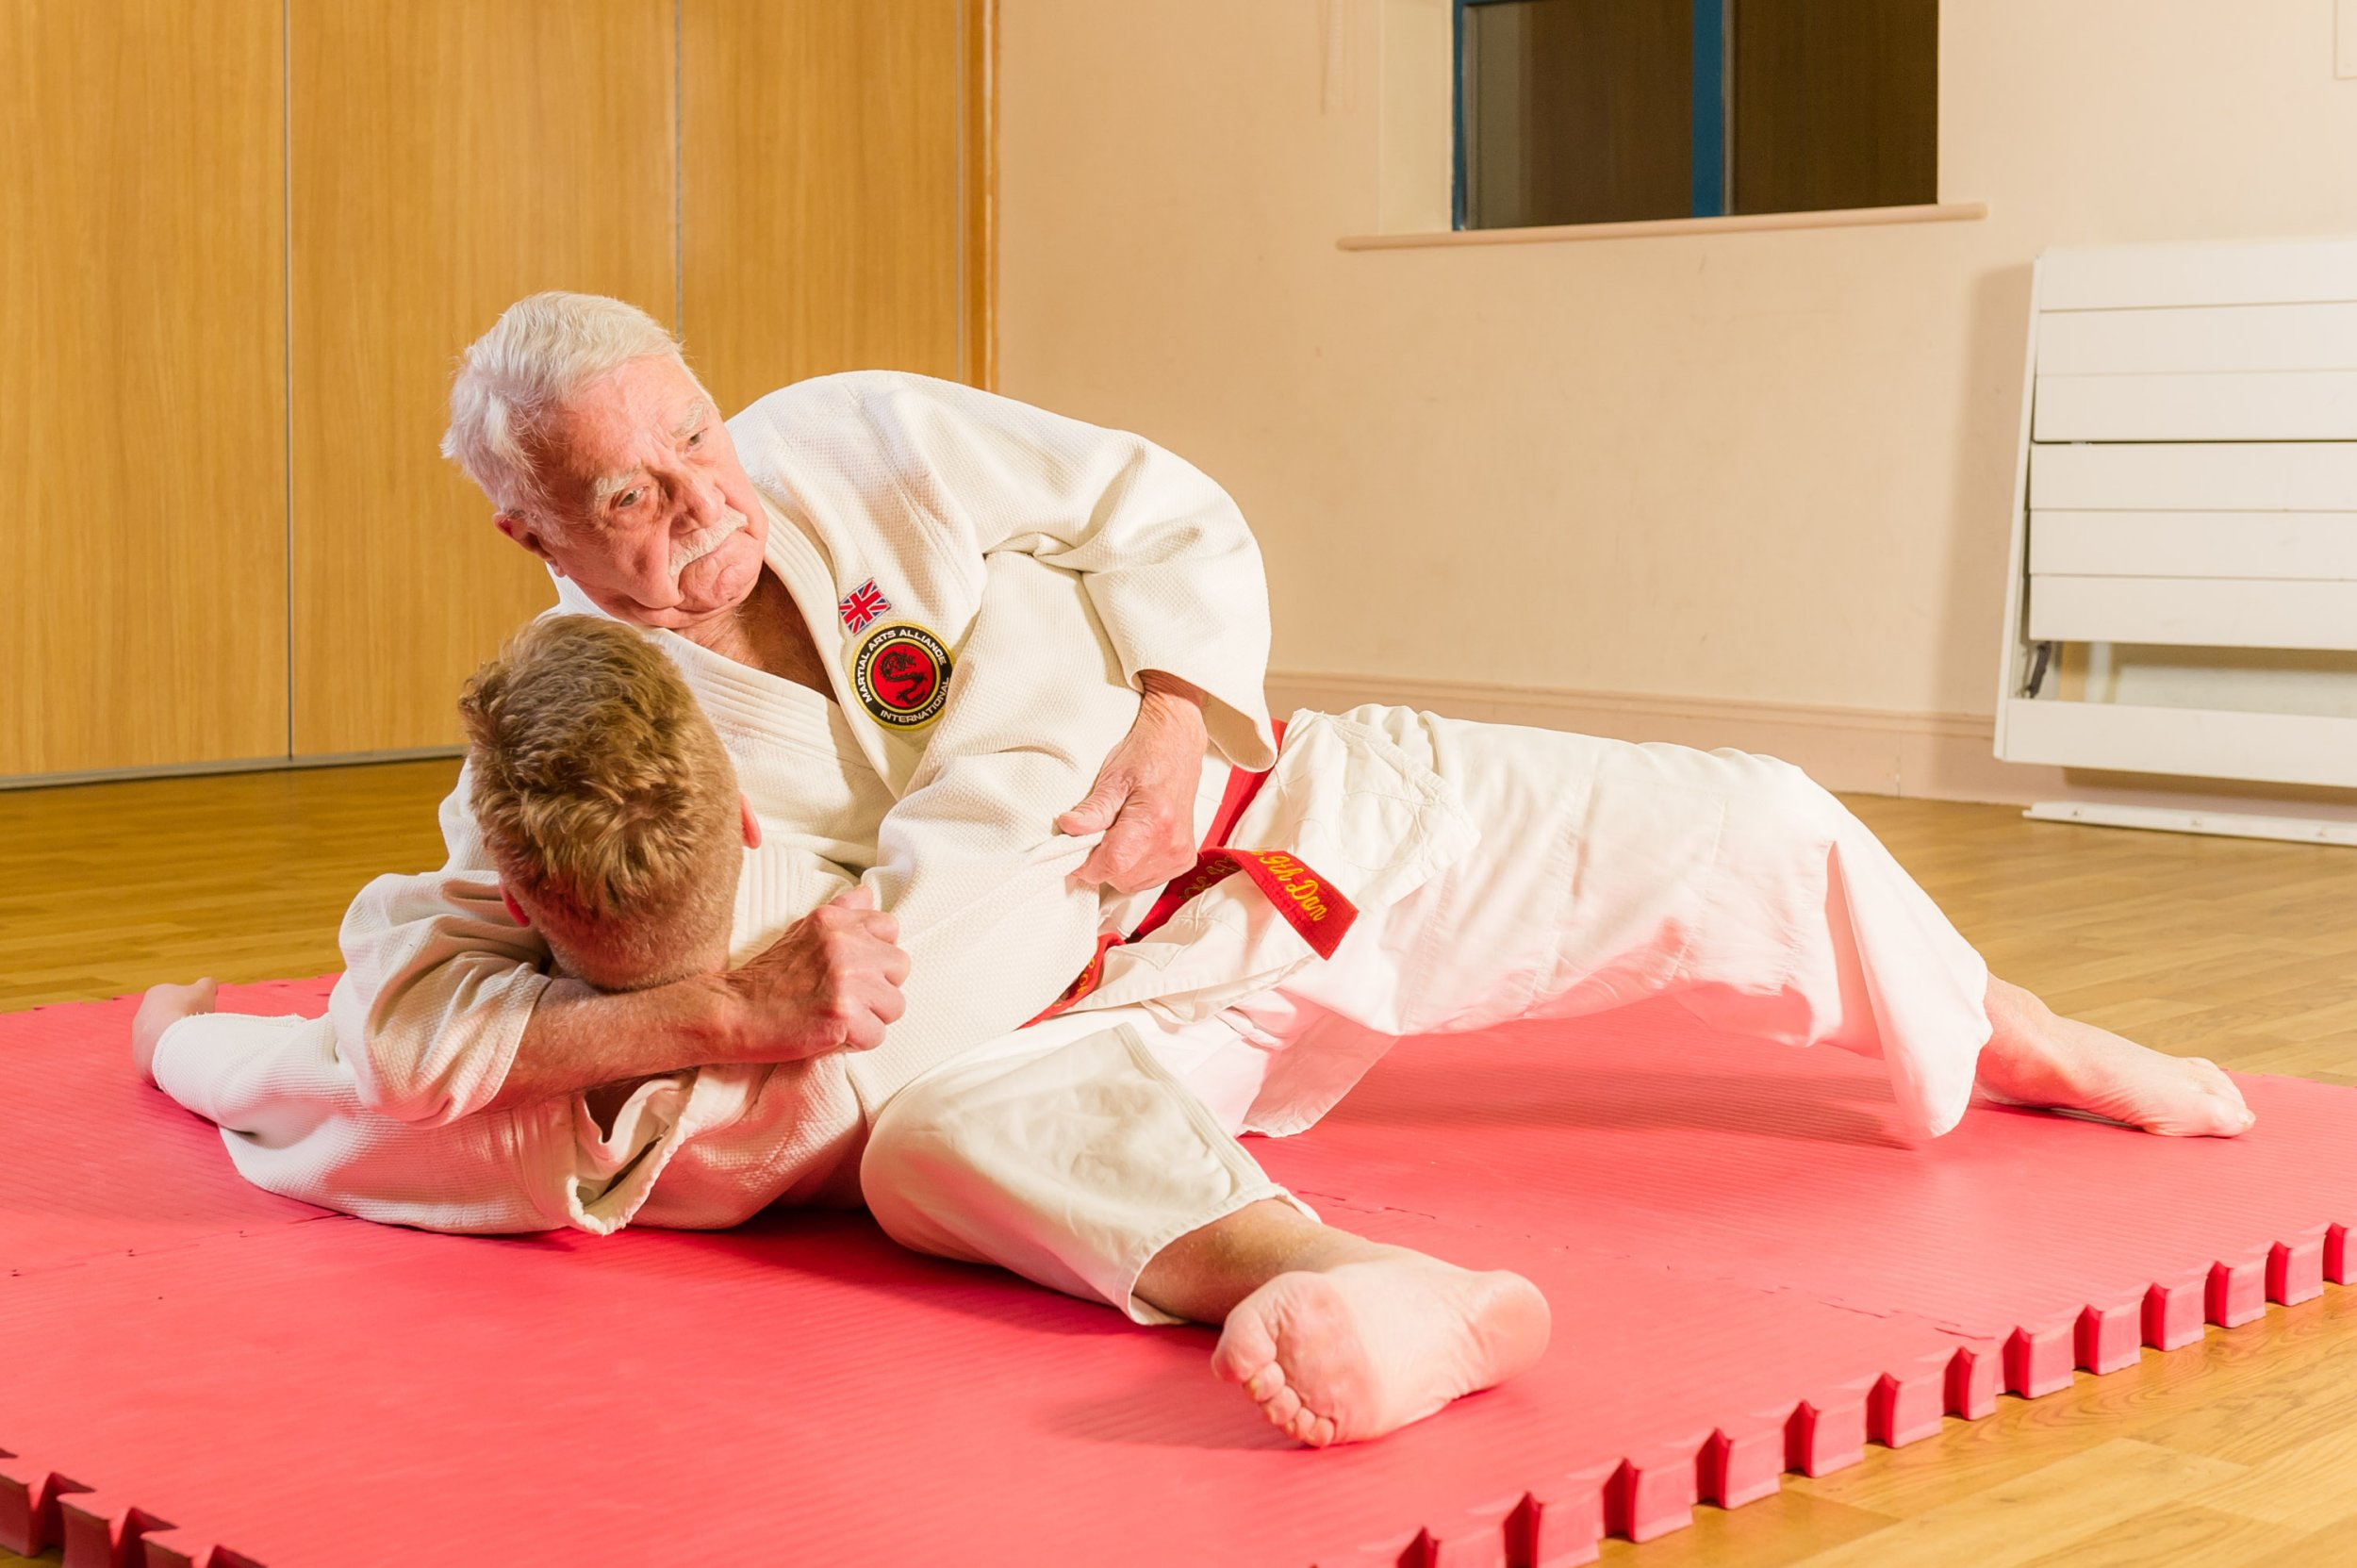 *** EXCLUSIVE - VIDEO AVAILABLE *** CRAMLINGTON, UNITED KINGDOM - FEBRUARY 11: 92-year-old Judo sensei, Jack Hearn, giving instruction during a judo lesson. Pictured on February 11, 2016 in Cramlington, Northumberland, England. CONDITION OF USAGE: The following byline must be used Groupon / Barcroft Media. MARTIAL arts master Jack Hearn is the oldest active Judo Sensei in the UK - and at 92-years-old, he has no plans of bowing out. The great-great-grandfather, from Cramlington, Northumberland, holds a 9th Dan black belt, making him one of the countryís highest graded players. Now the plucky pensioner, is working alongside Groupon on a campaign to encourage Britainís retirees to try something new. Recent research from Groupon has found that retired Brits are now 15% more active than the rest of the nation and spend more time outdoors than most 18-24 year olds, with 35% saying that risky activities make them feel younger. Jack will be offering five lucky winners the chance to train with him in one of his Judo classes. To enter the free deal to be in with a chance of winning visit: www.gr.pn/jack PHOTOGRAPH BY Barcroft Media / Groupon UK Office, London. T +44 845 370 2233 W www.barcroftmedia.com USA Office, New York City. T +1 212 796 2458 W www.barcroftusa.com Indian Office, Delhi. T +91 11 4053 2429 W www.barcroftindia.com